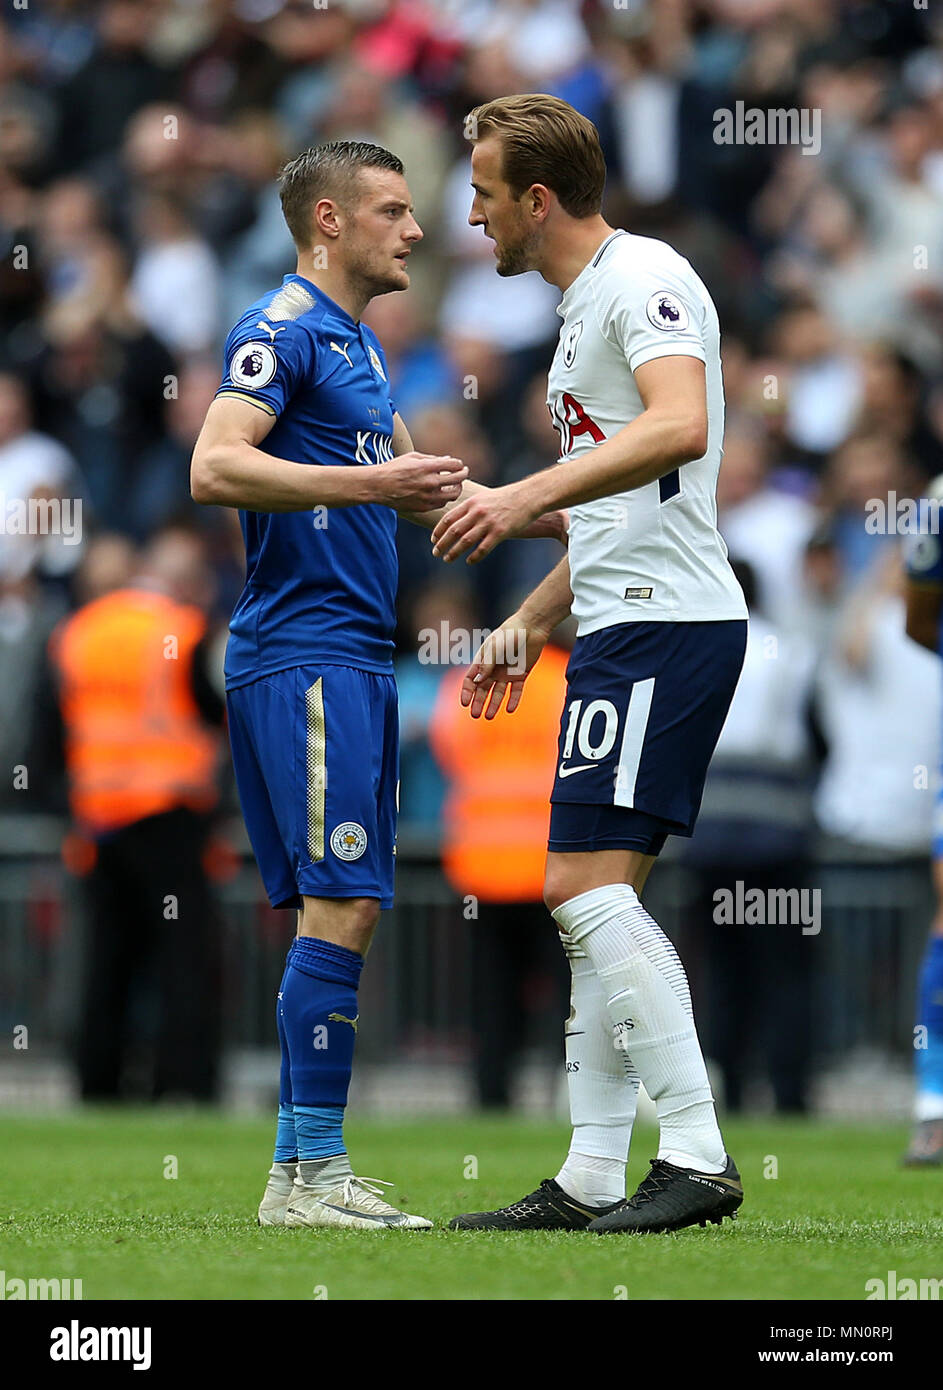 tottenham hotspur s harry kane shakes hands with leicester city s jamie vardy at full time during the premier league match at wembley stadium london stock photo alamy https www alamy com tottenham hotspurs harry kane shakes hands with leicester citys jamie vardy at full time during the premier league match at wembley stadium london image185030122 html